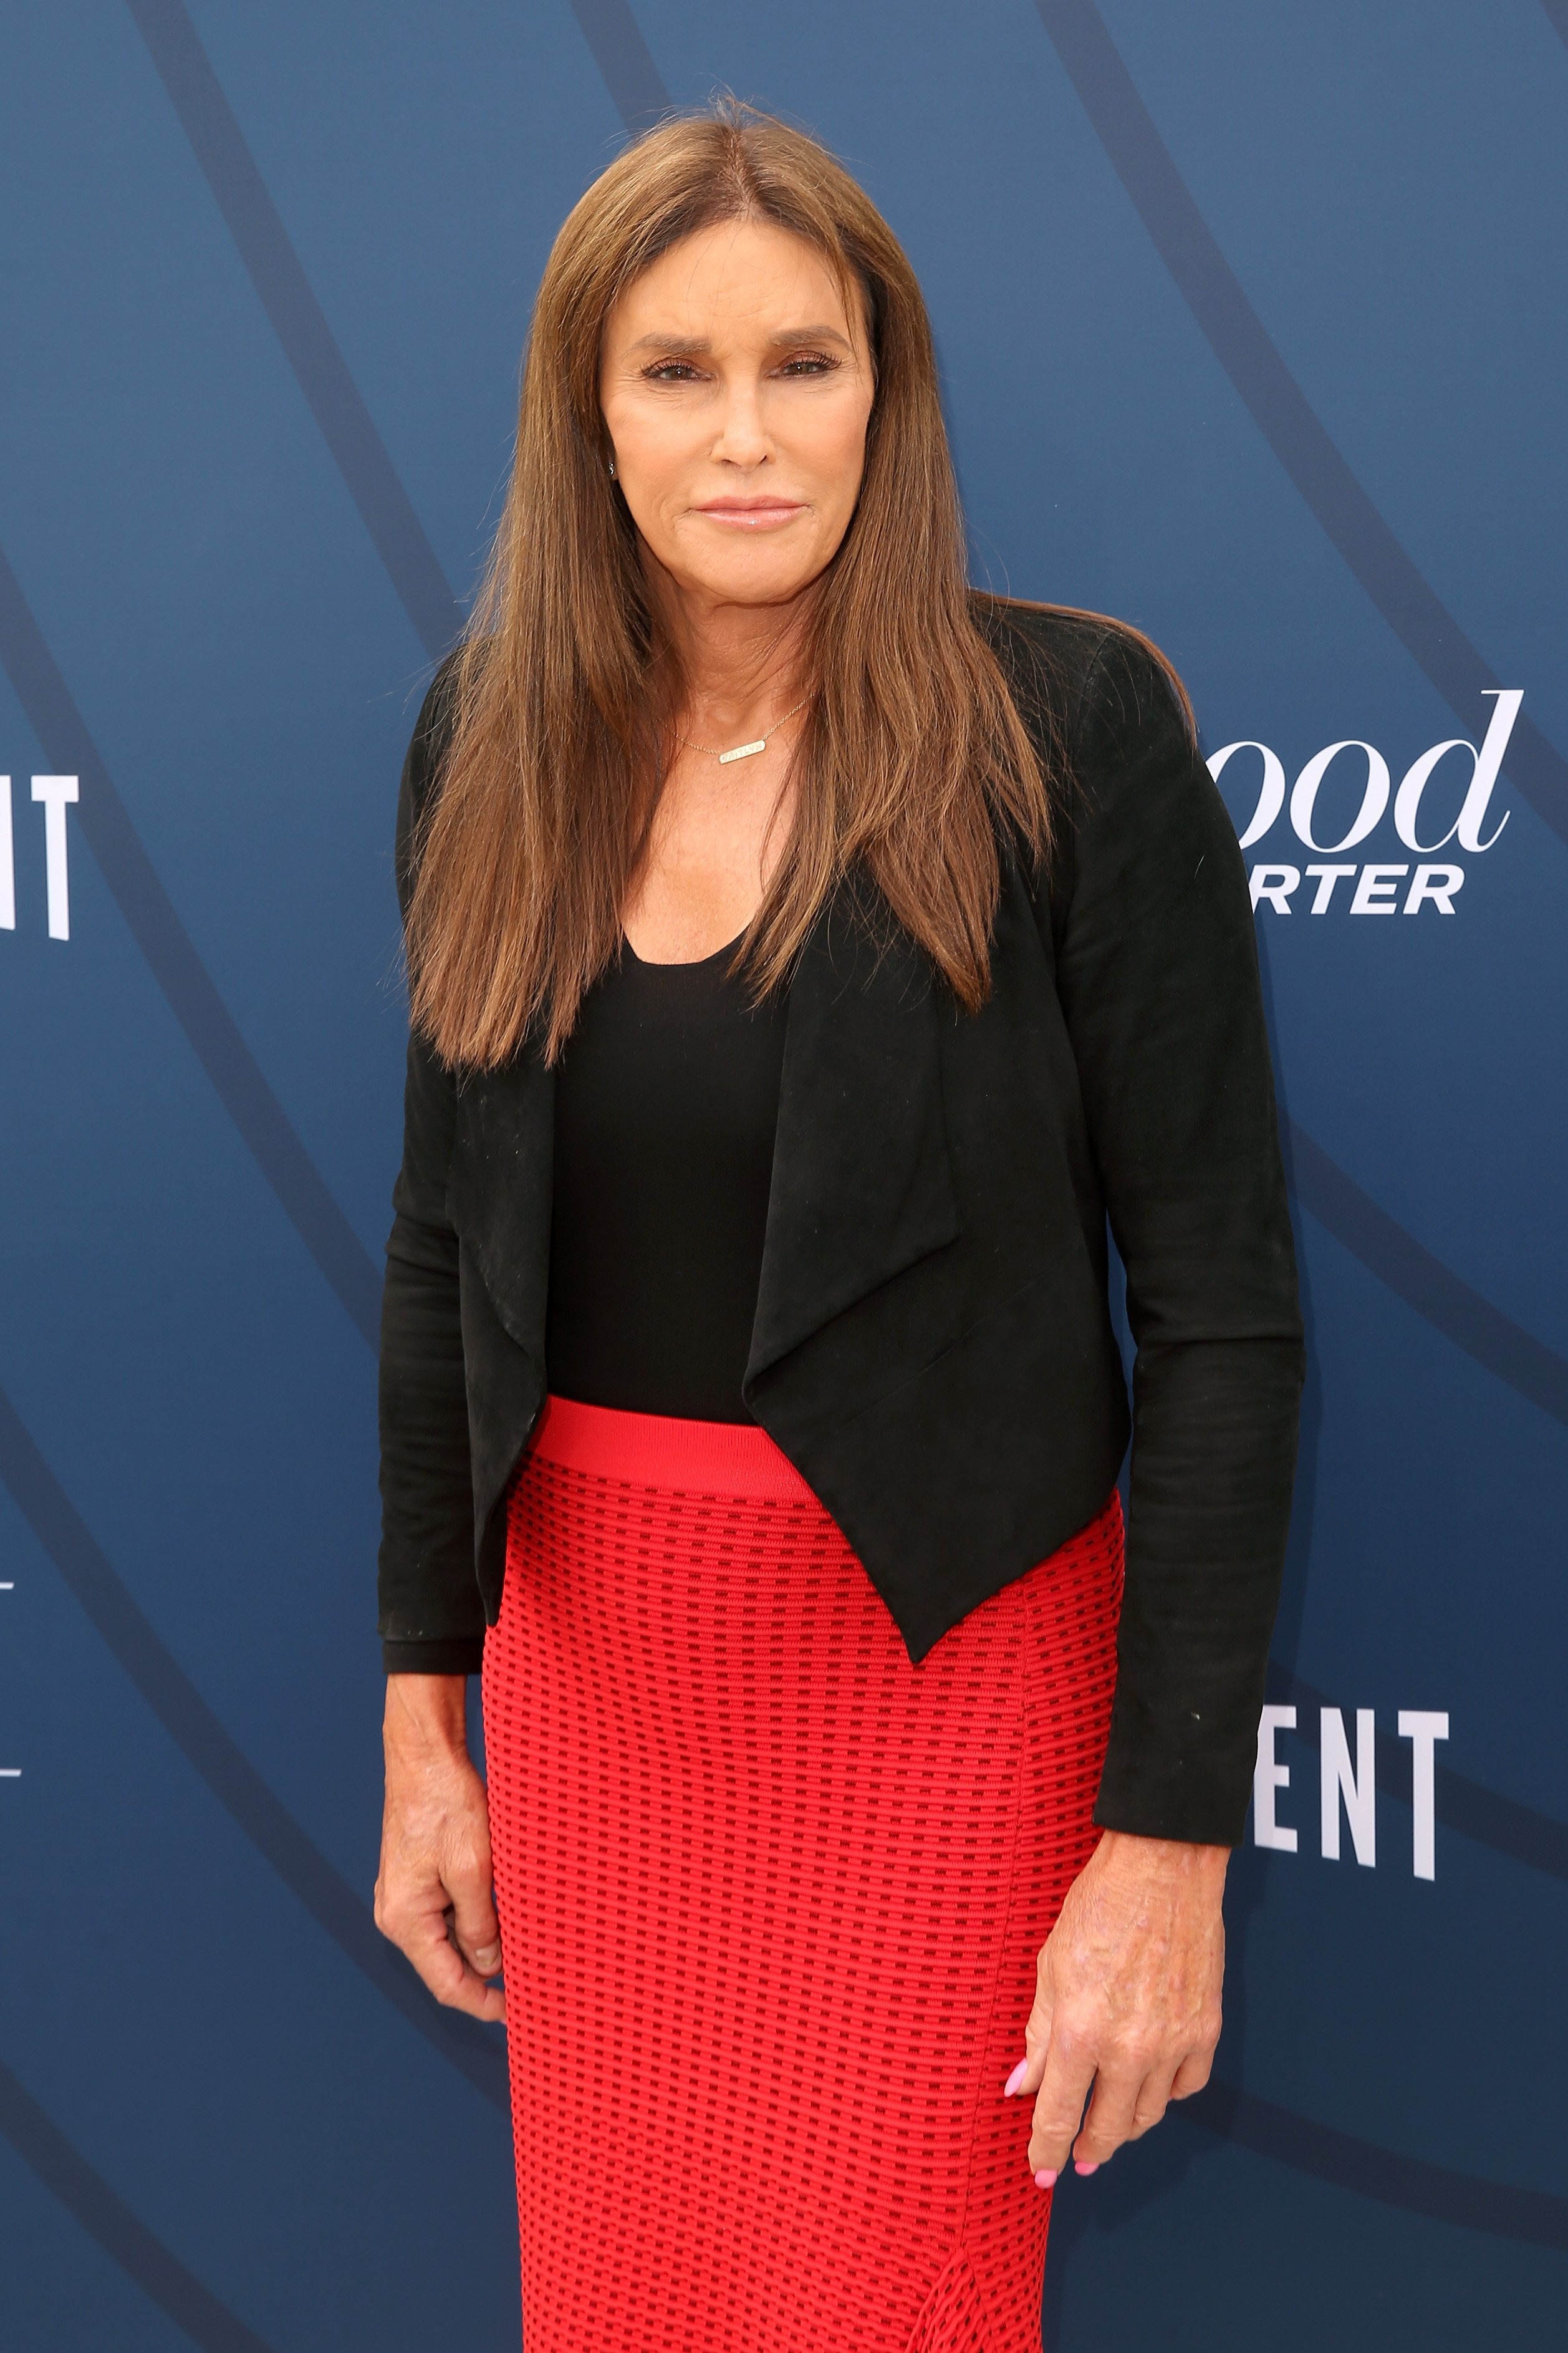 Caitlyn Jenner attends The Hollywood Reporter's Empowerment In Entertainment Event 2019 on April 30, 2019, in Los Angeles, California. | Source: Getty Images.